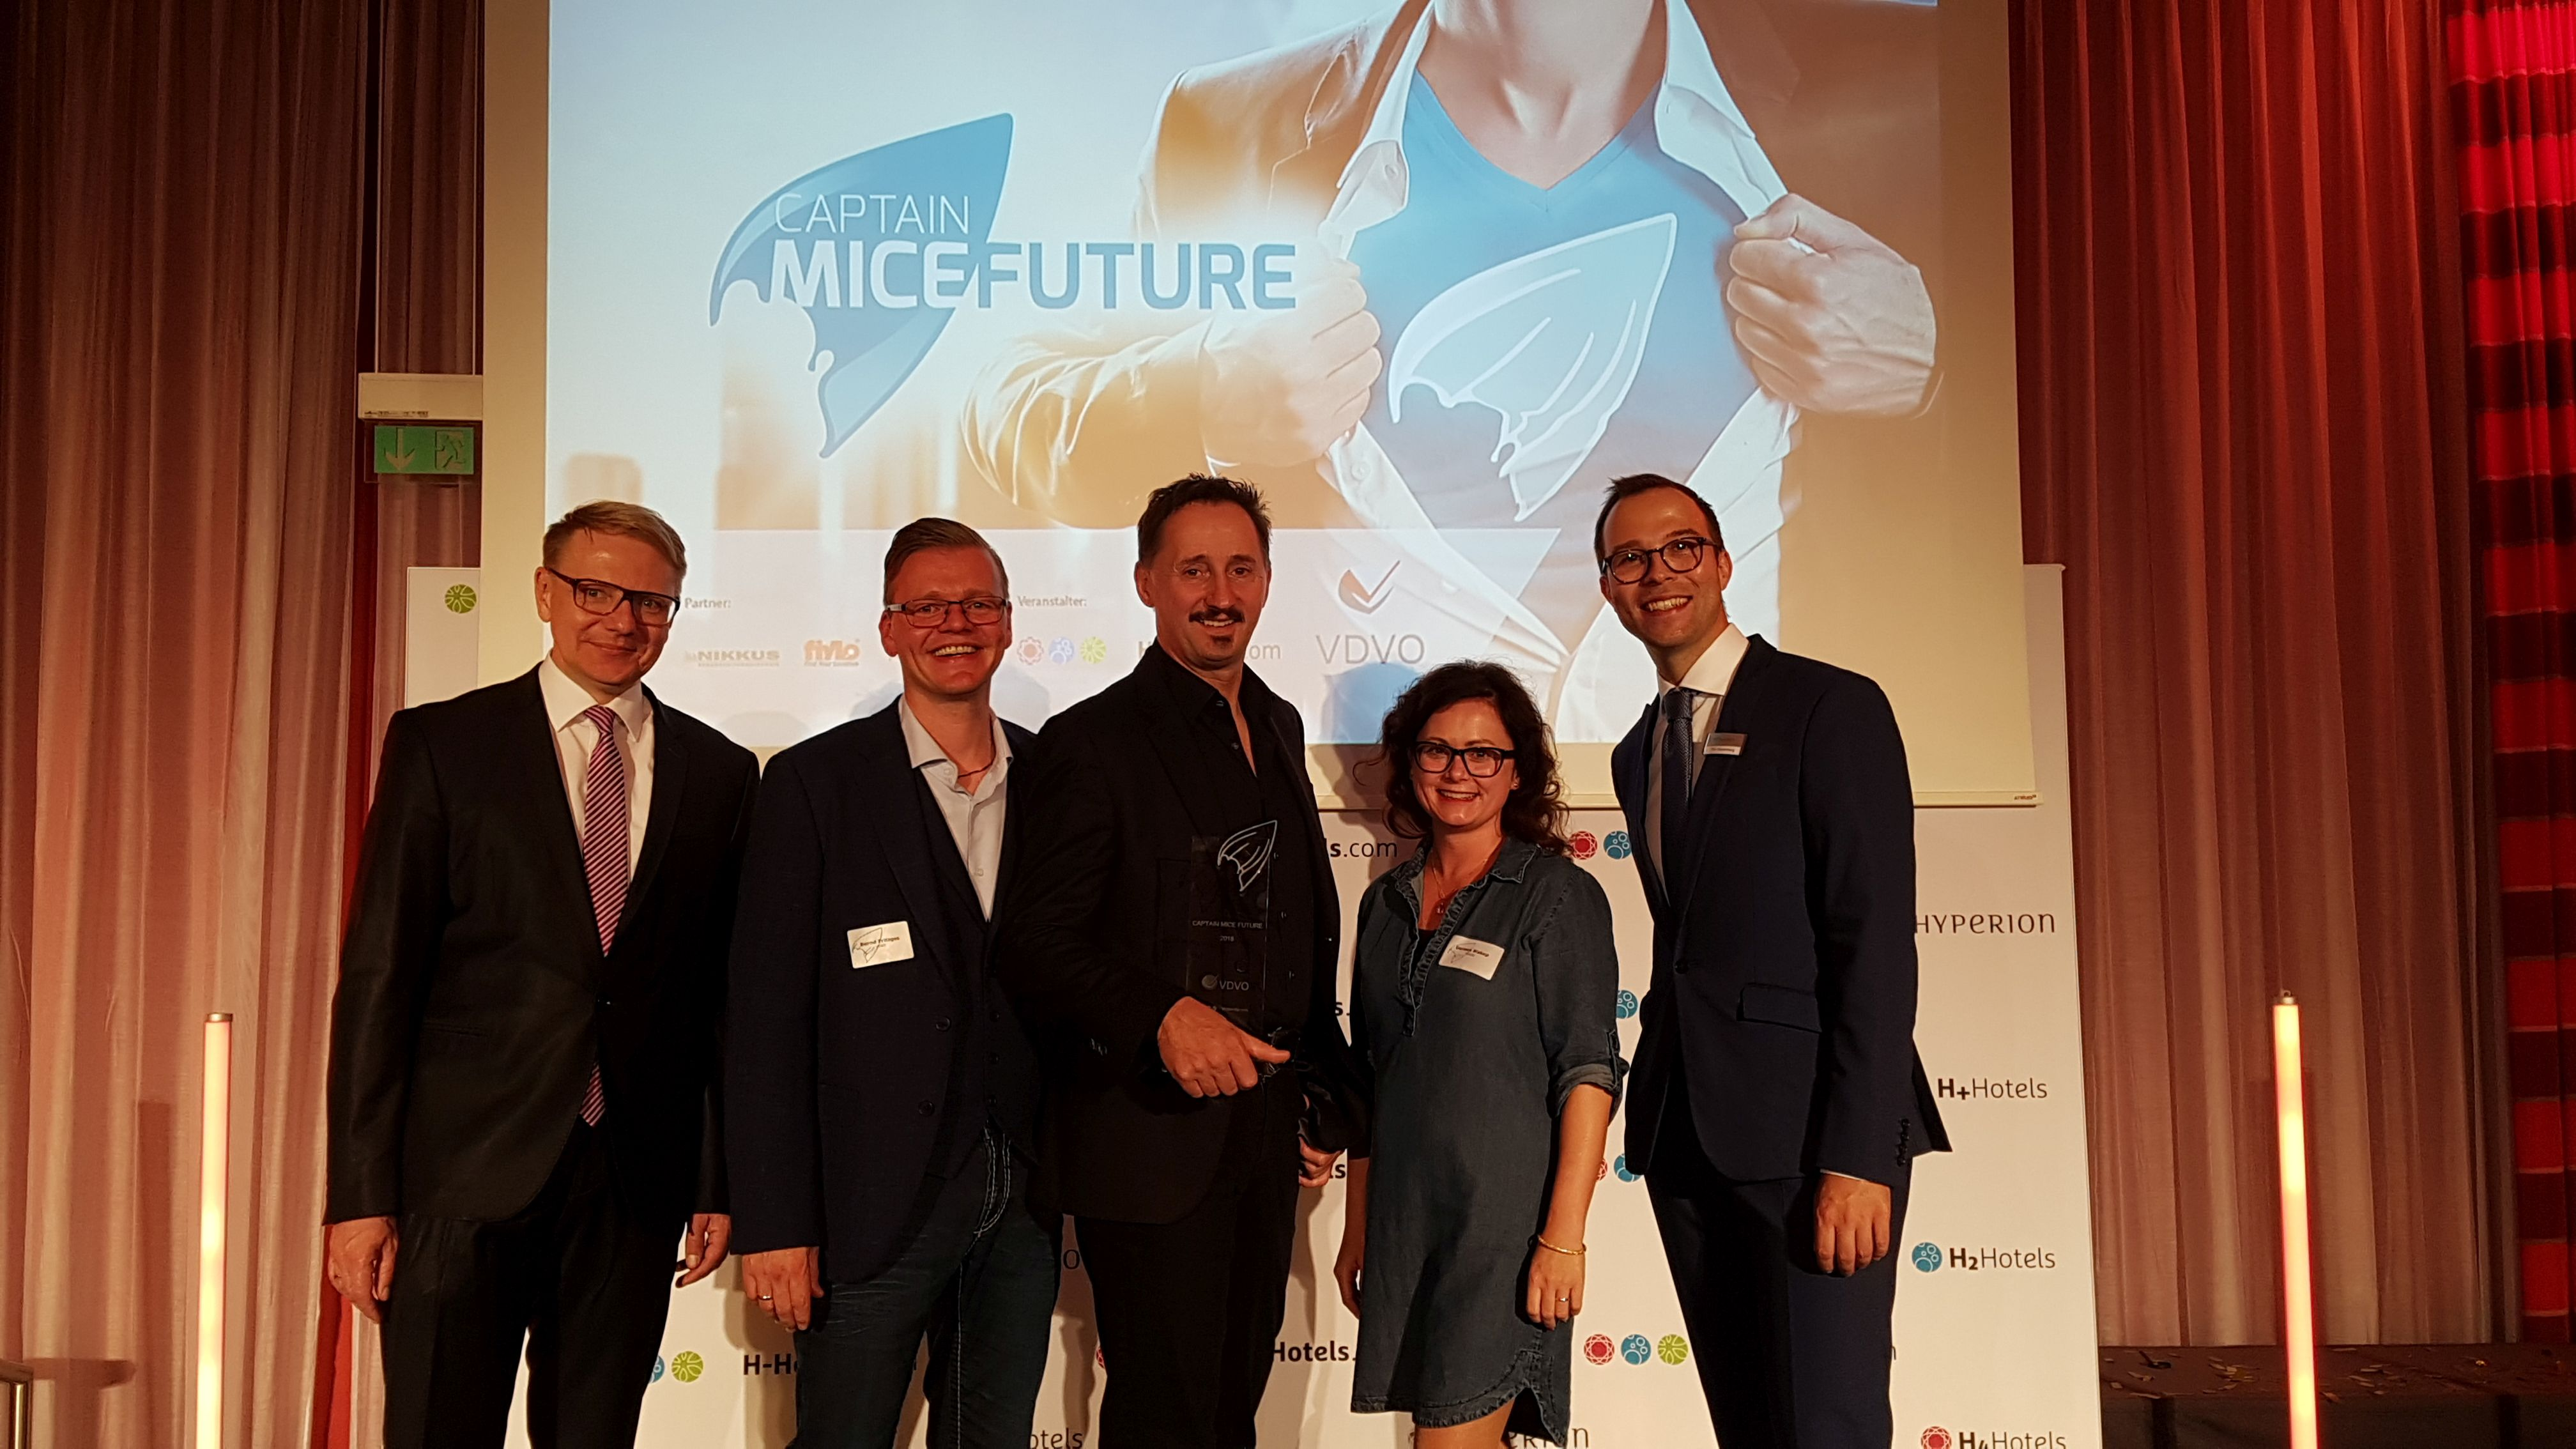 And the Start-up Oscar goes to… YUNYTY! VDVO kürt führendes Event-Buchungsportal zum Sieger beim Captain MICE Future 2018